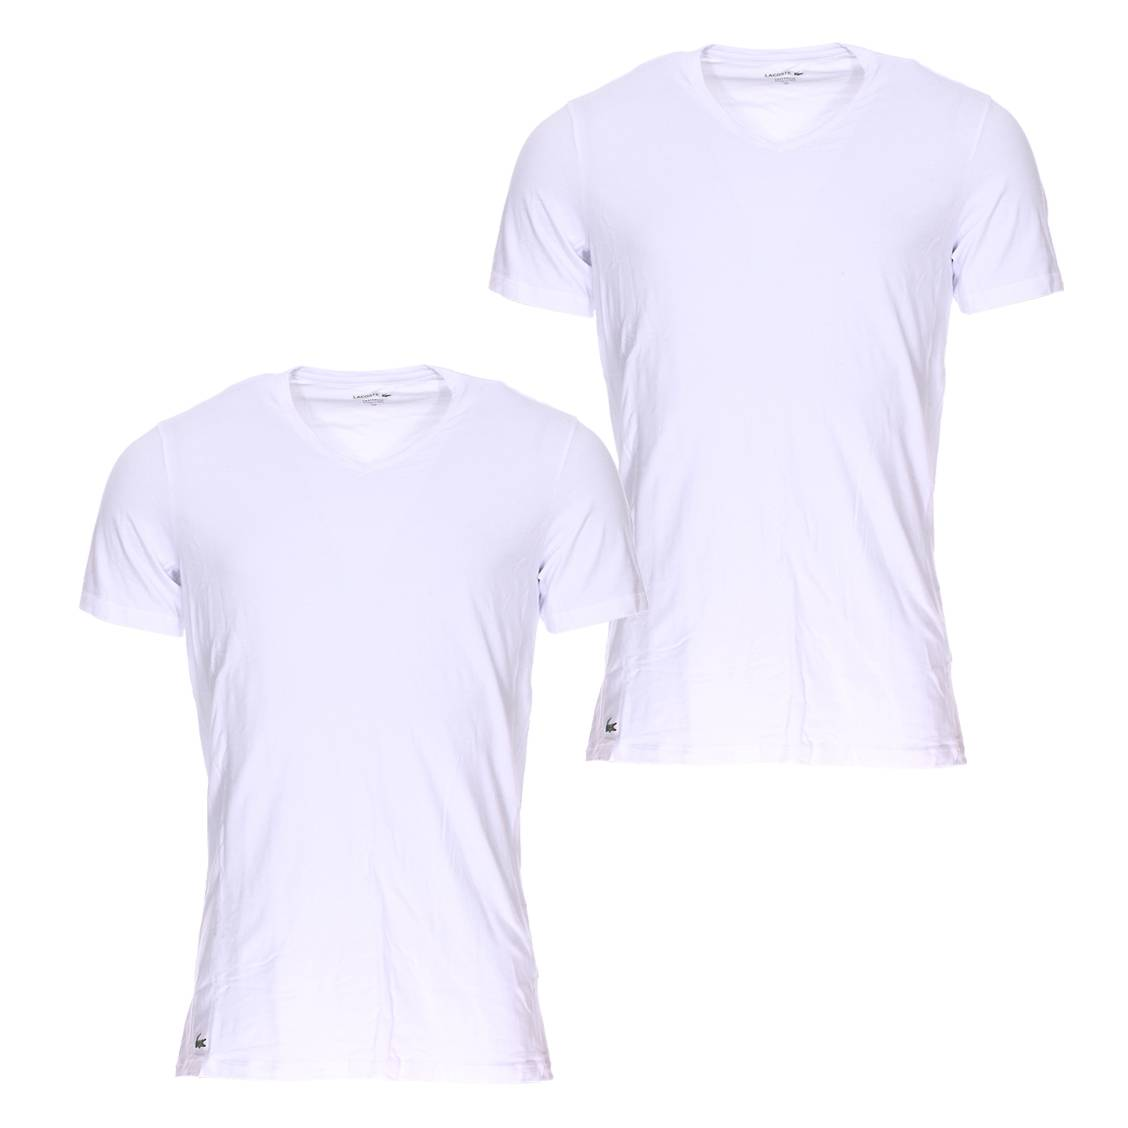 lot de 2 tee shirts col v lacoste en coton stretch blanc rue des hommes. Black Bedroom Furniture Sets. Home Design Ideas